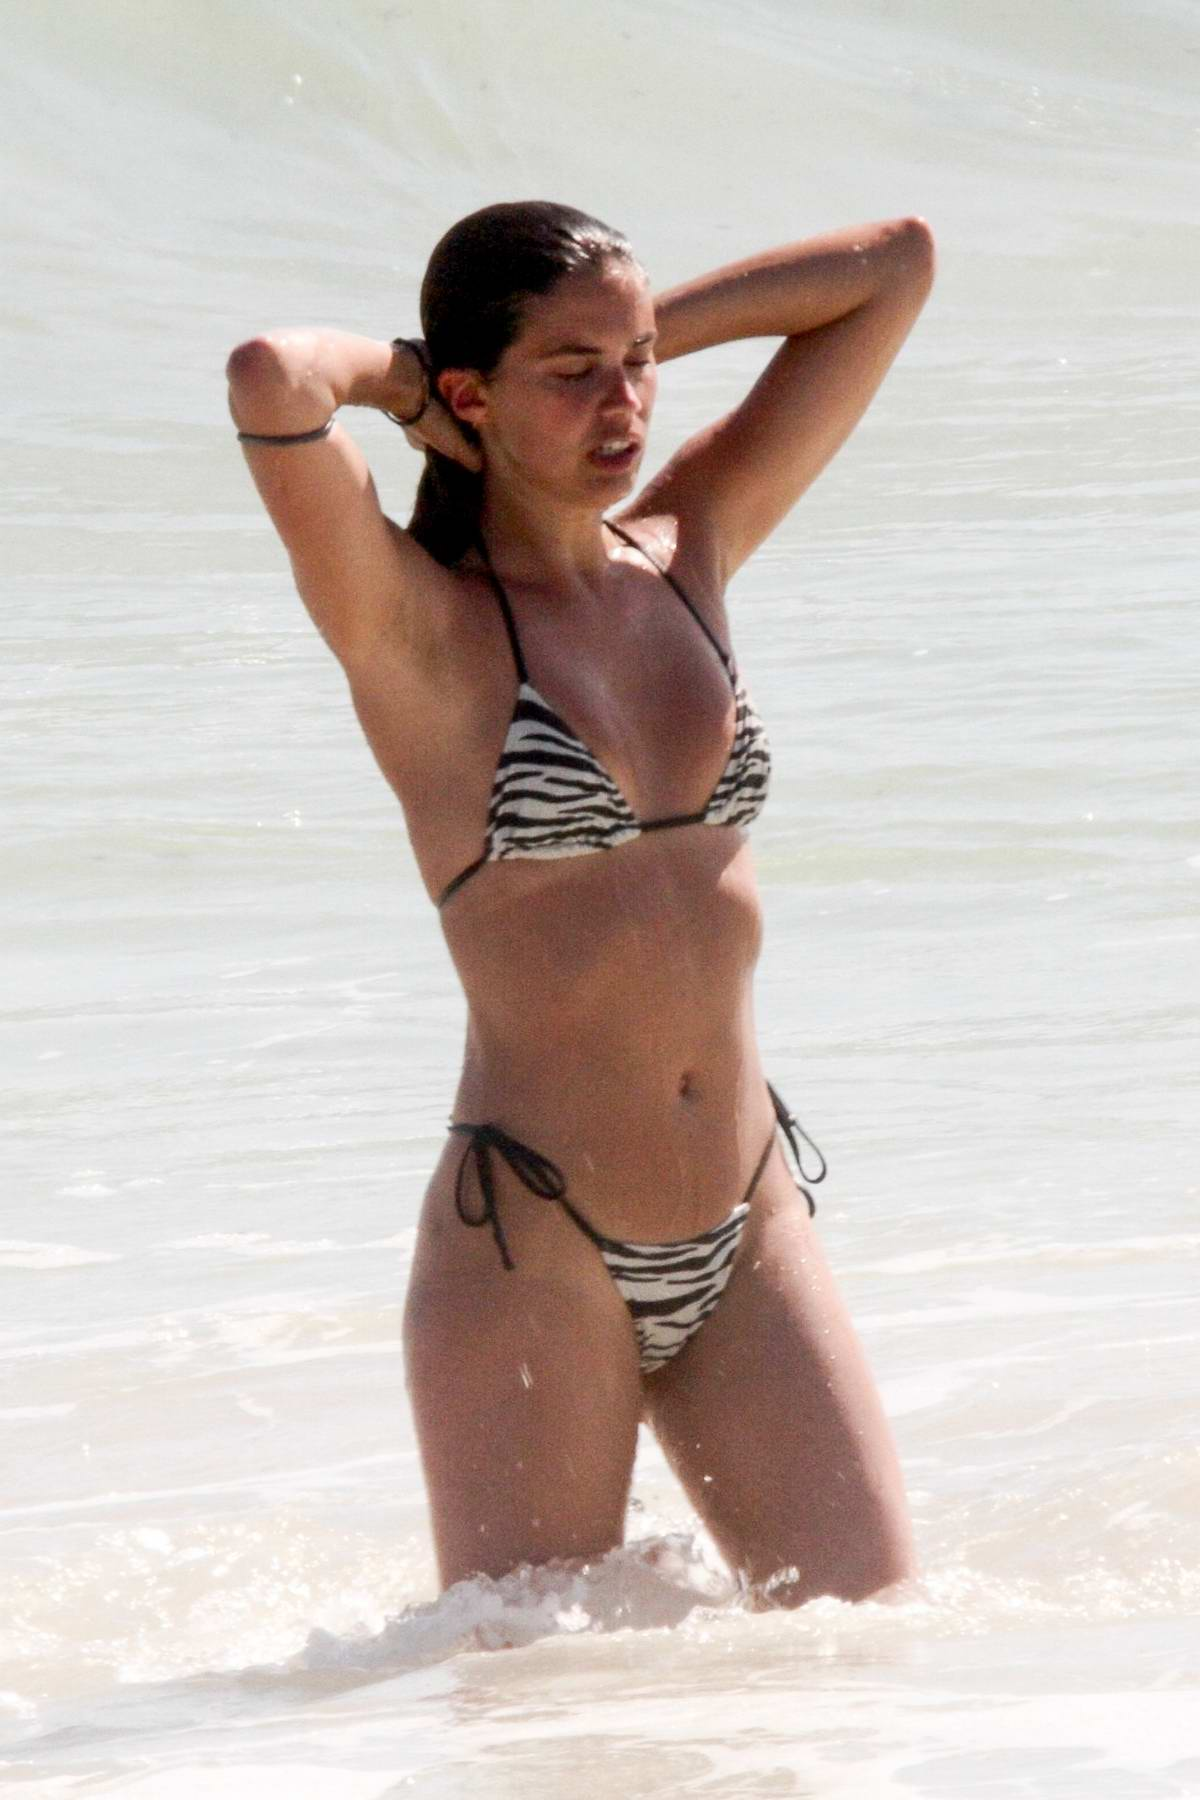 Sara Sampaio shows off her beach body in an animal print bikini as she enjoys the sun and the sea with Oliver Ripley in Tulum, Mexico